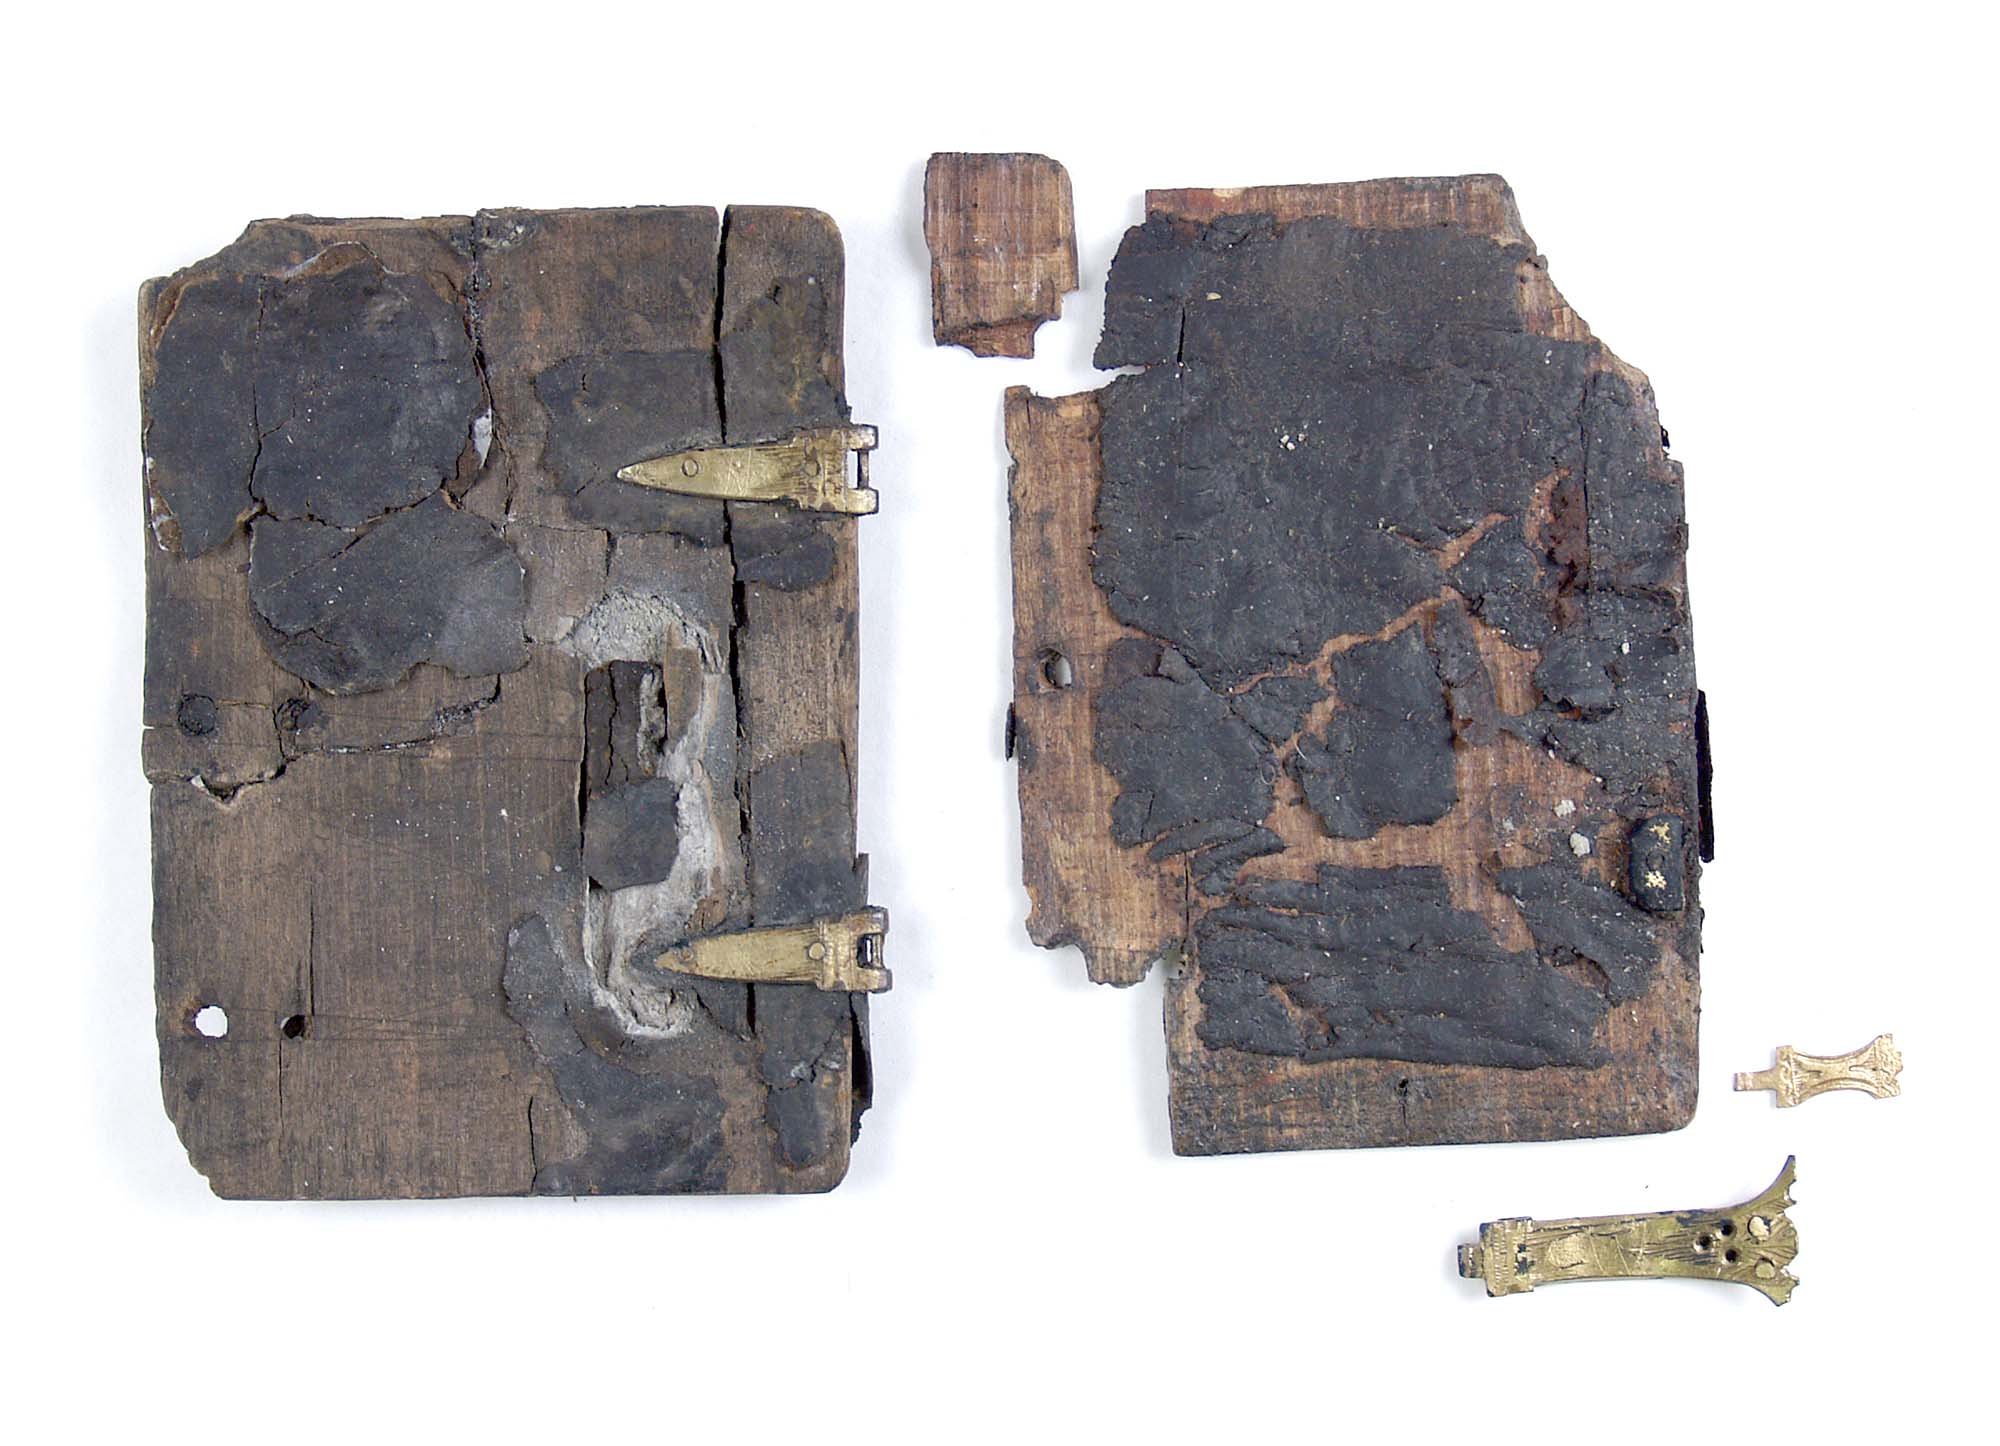 a photo of the remains of an old book cover on leather covered wood with metal hinges